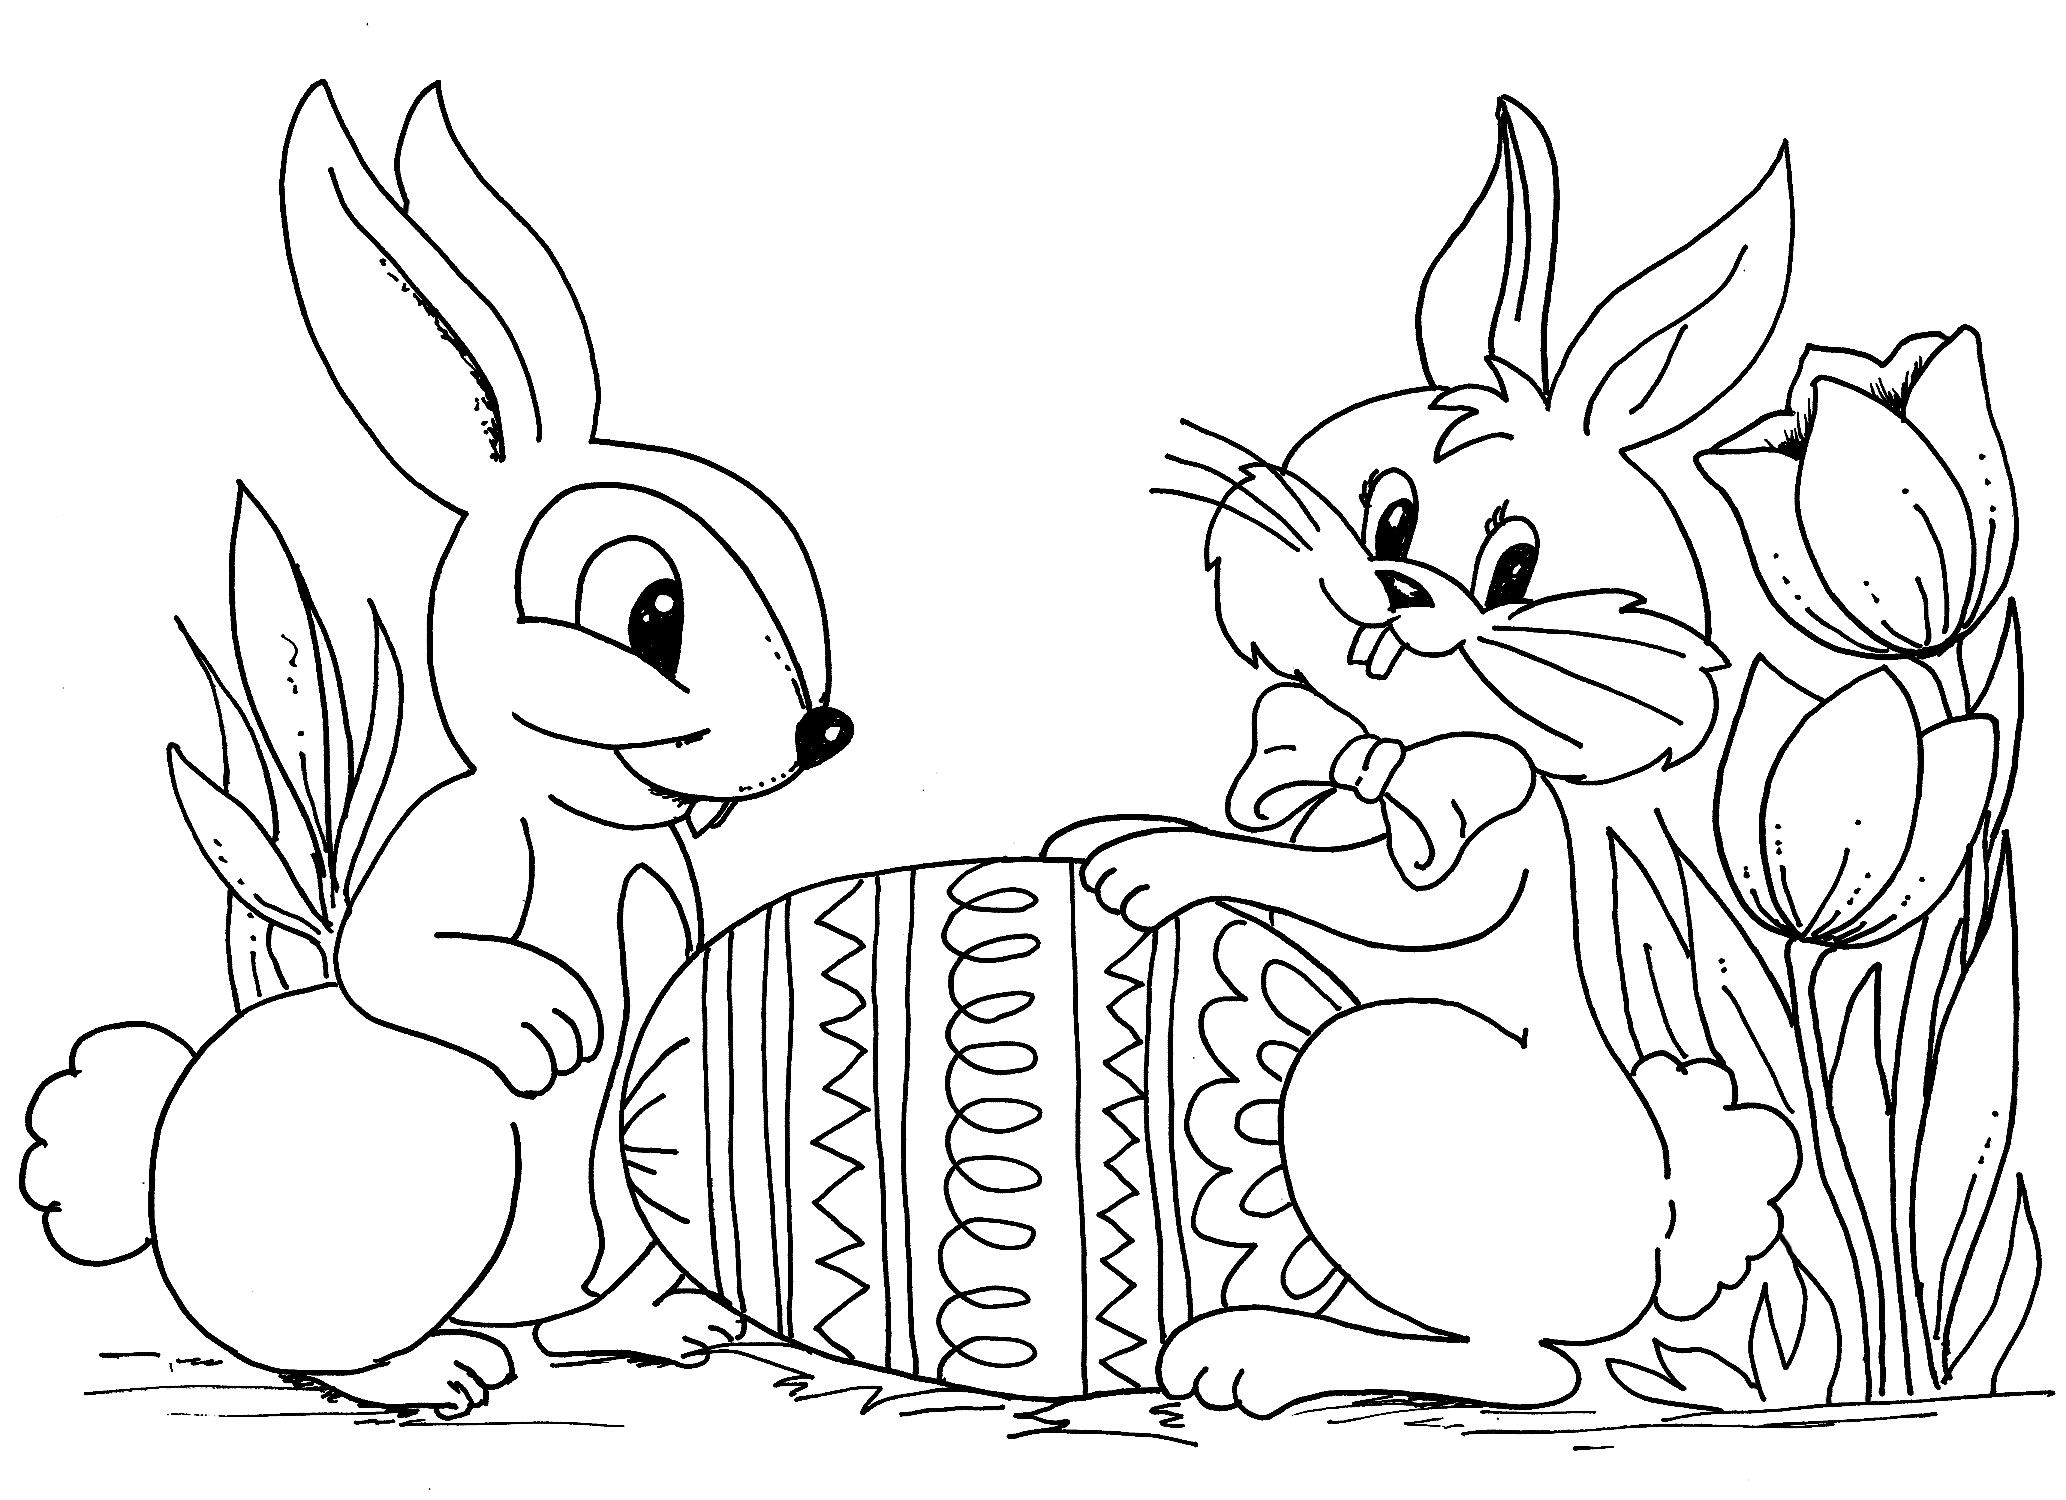 easter rabbit coloring pages for kids free printable texas life - Resurrection Coloring Pages Print